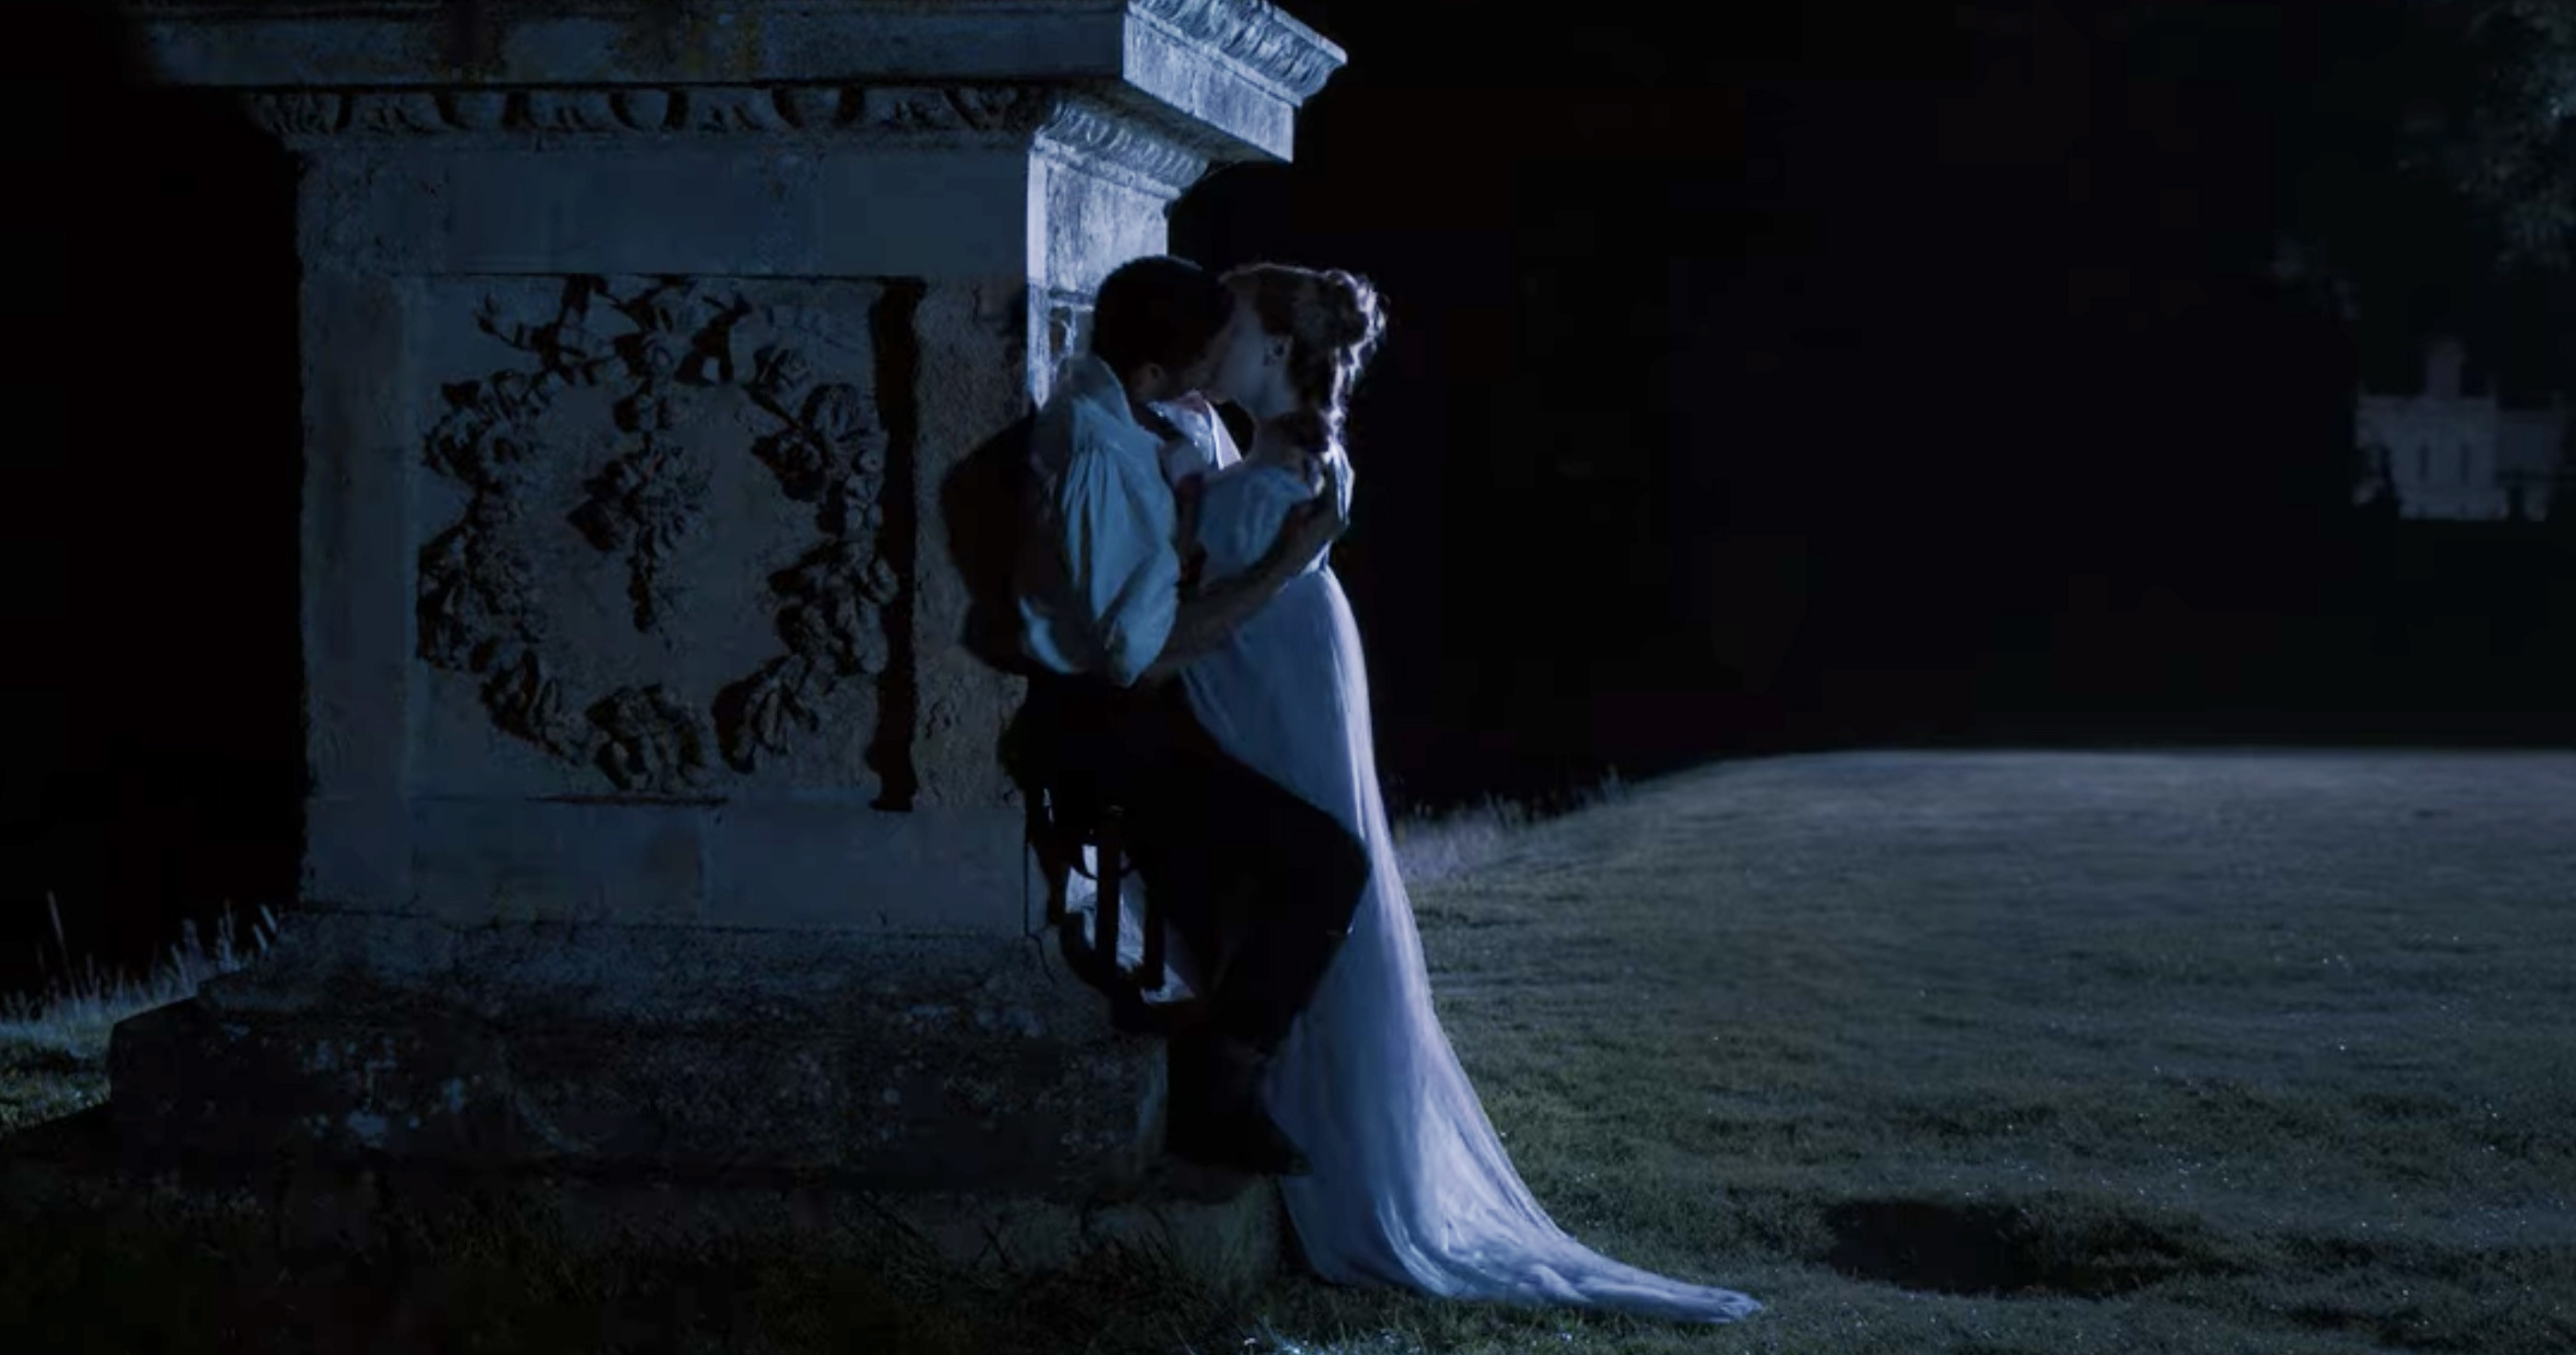 Simon and Daphne passionately kissing against a statue outside